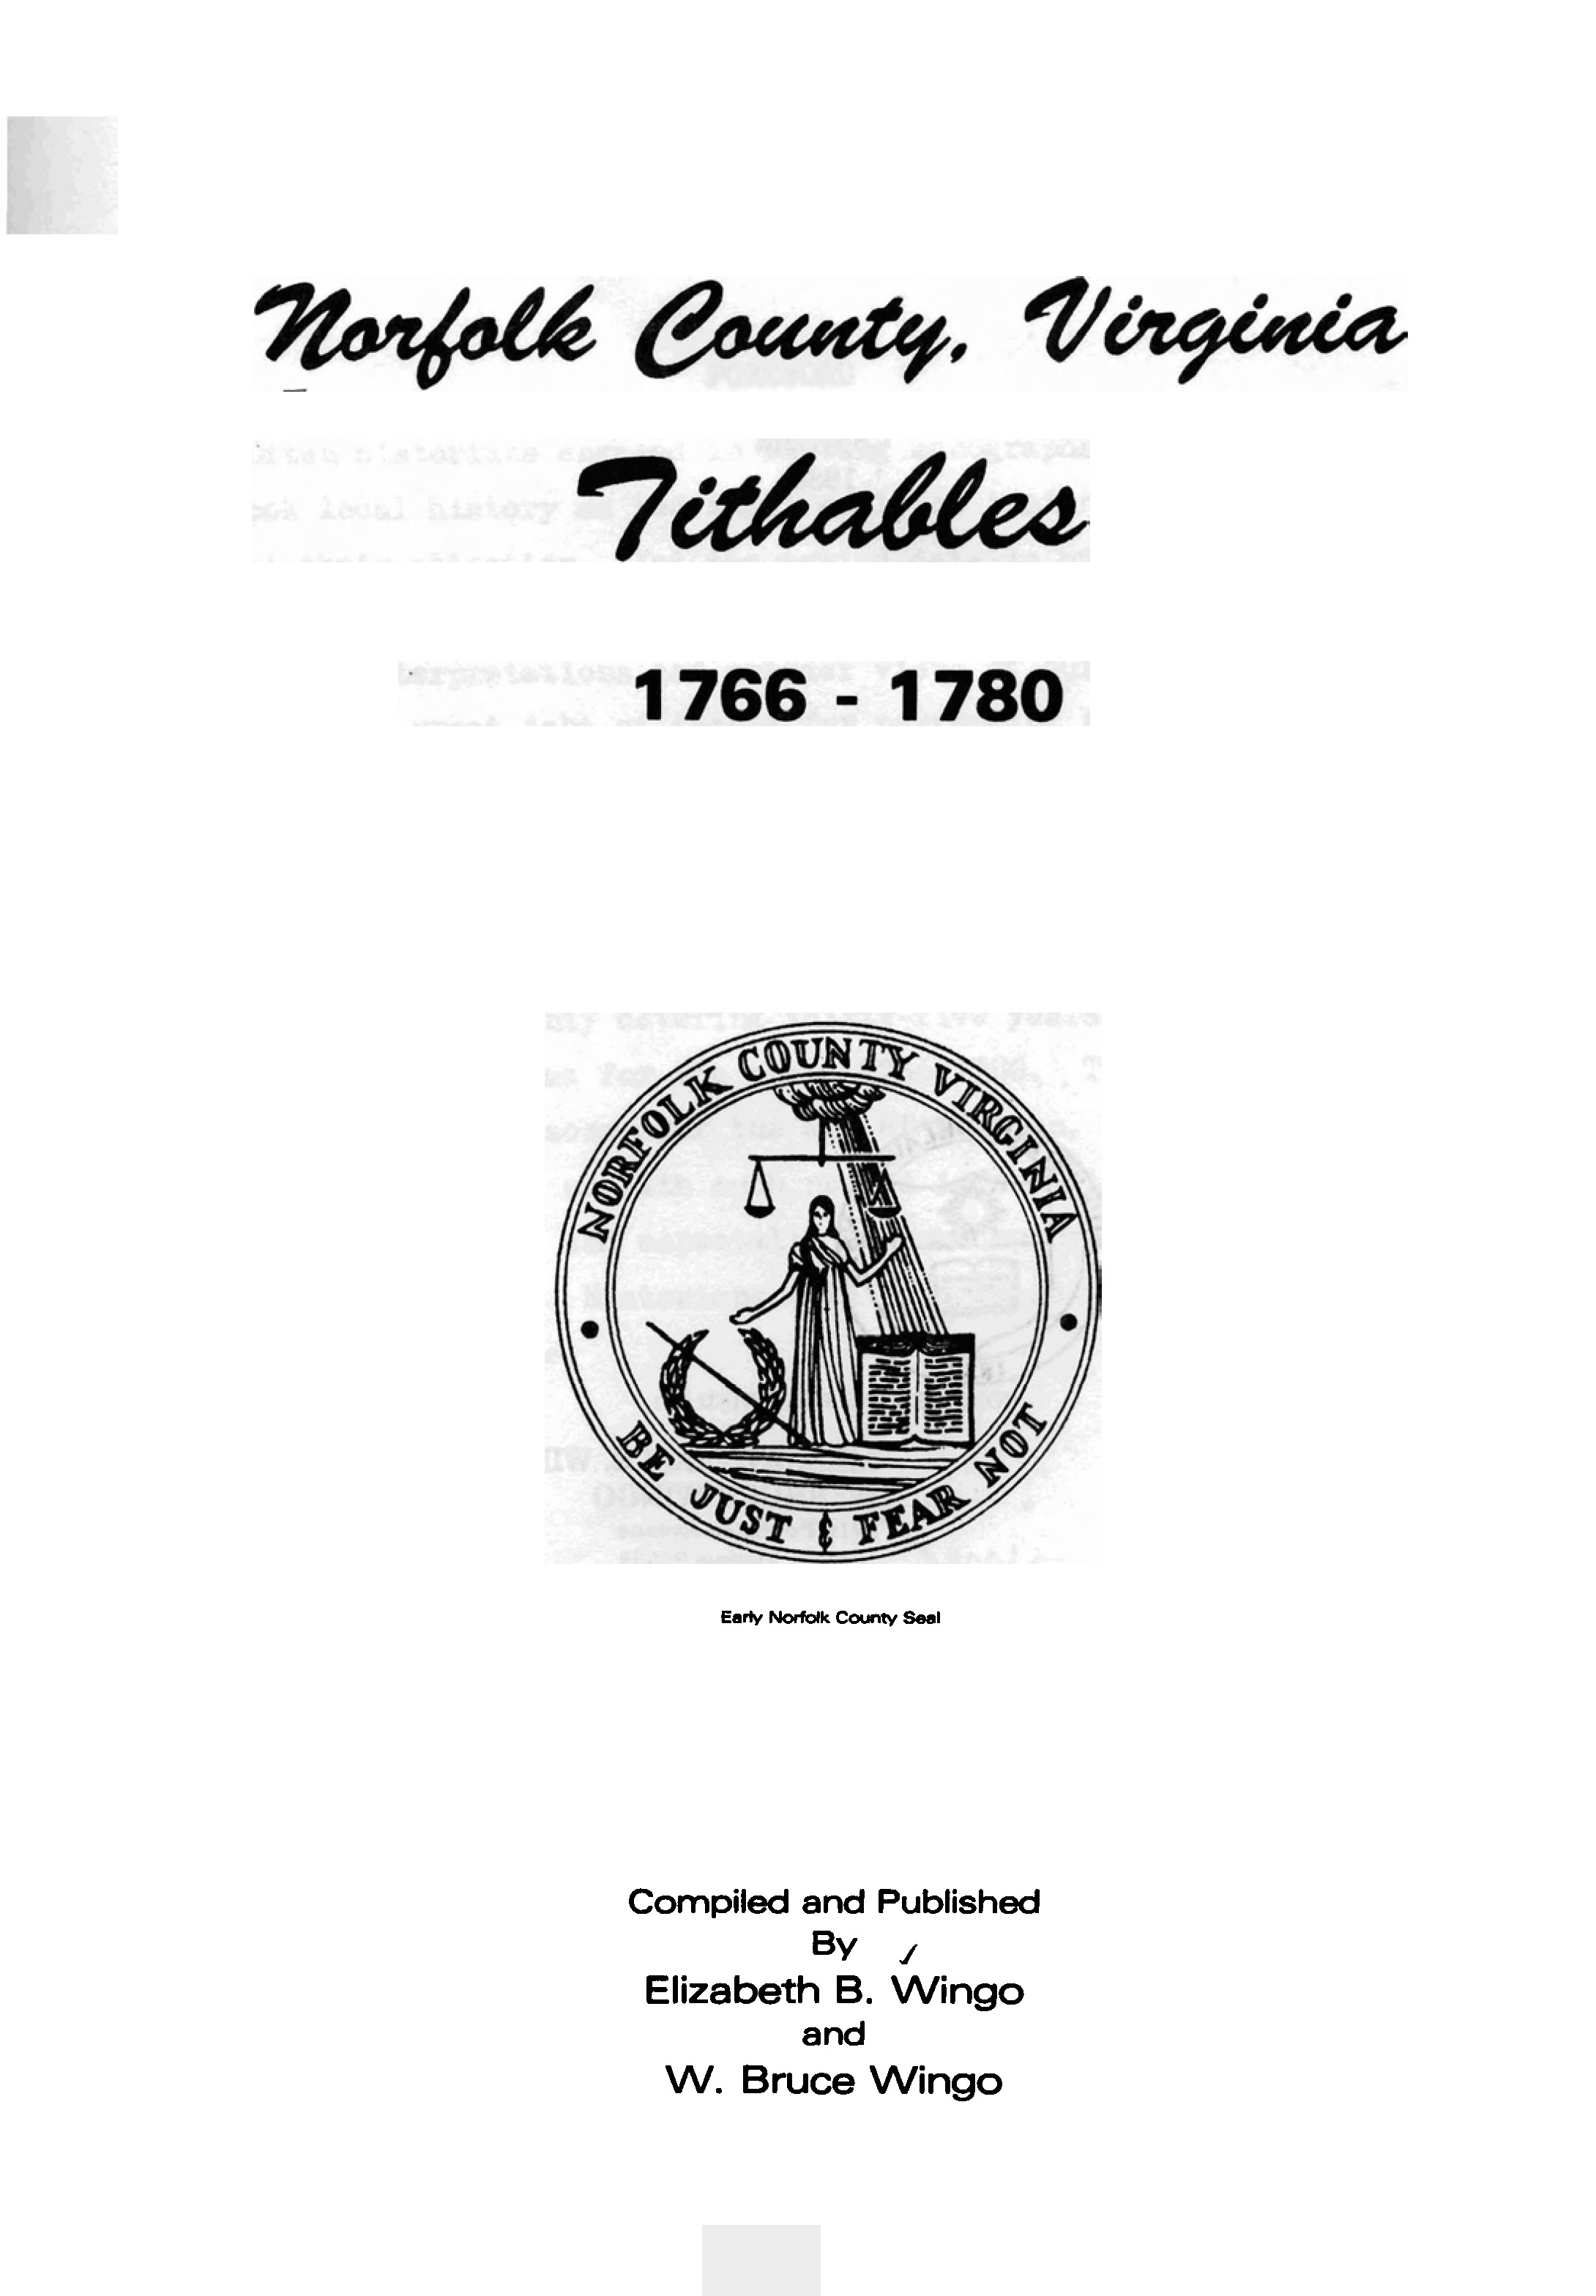 Norfolk County Virginia Tithables, Volume 3, 1766 - 1780